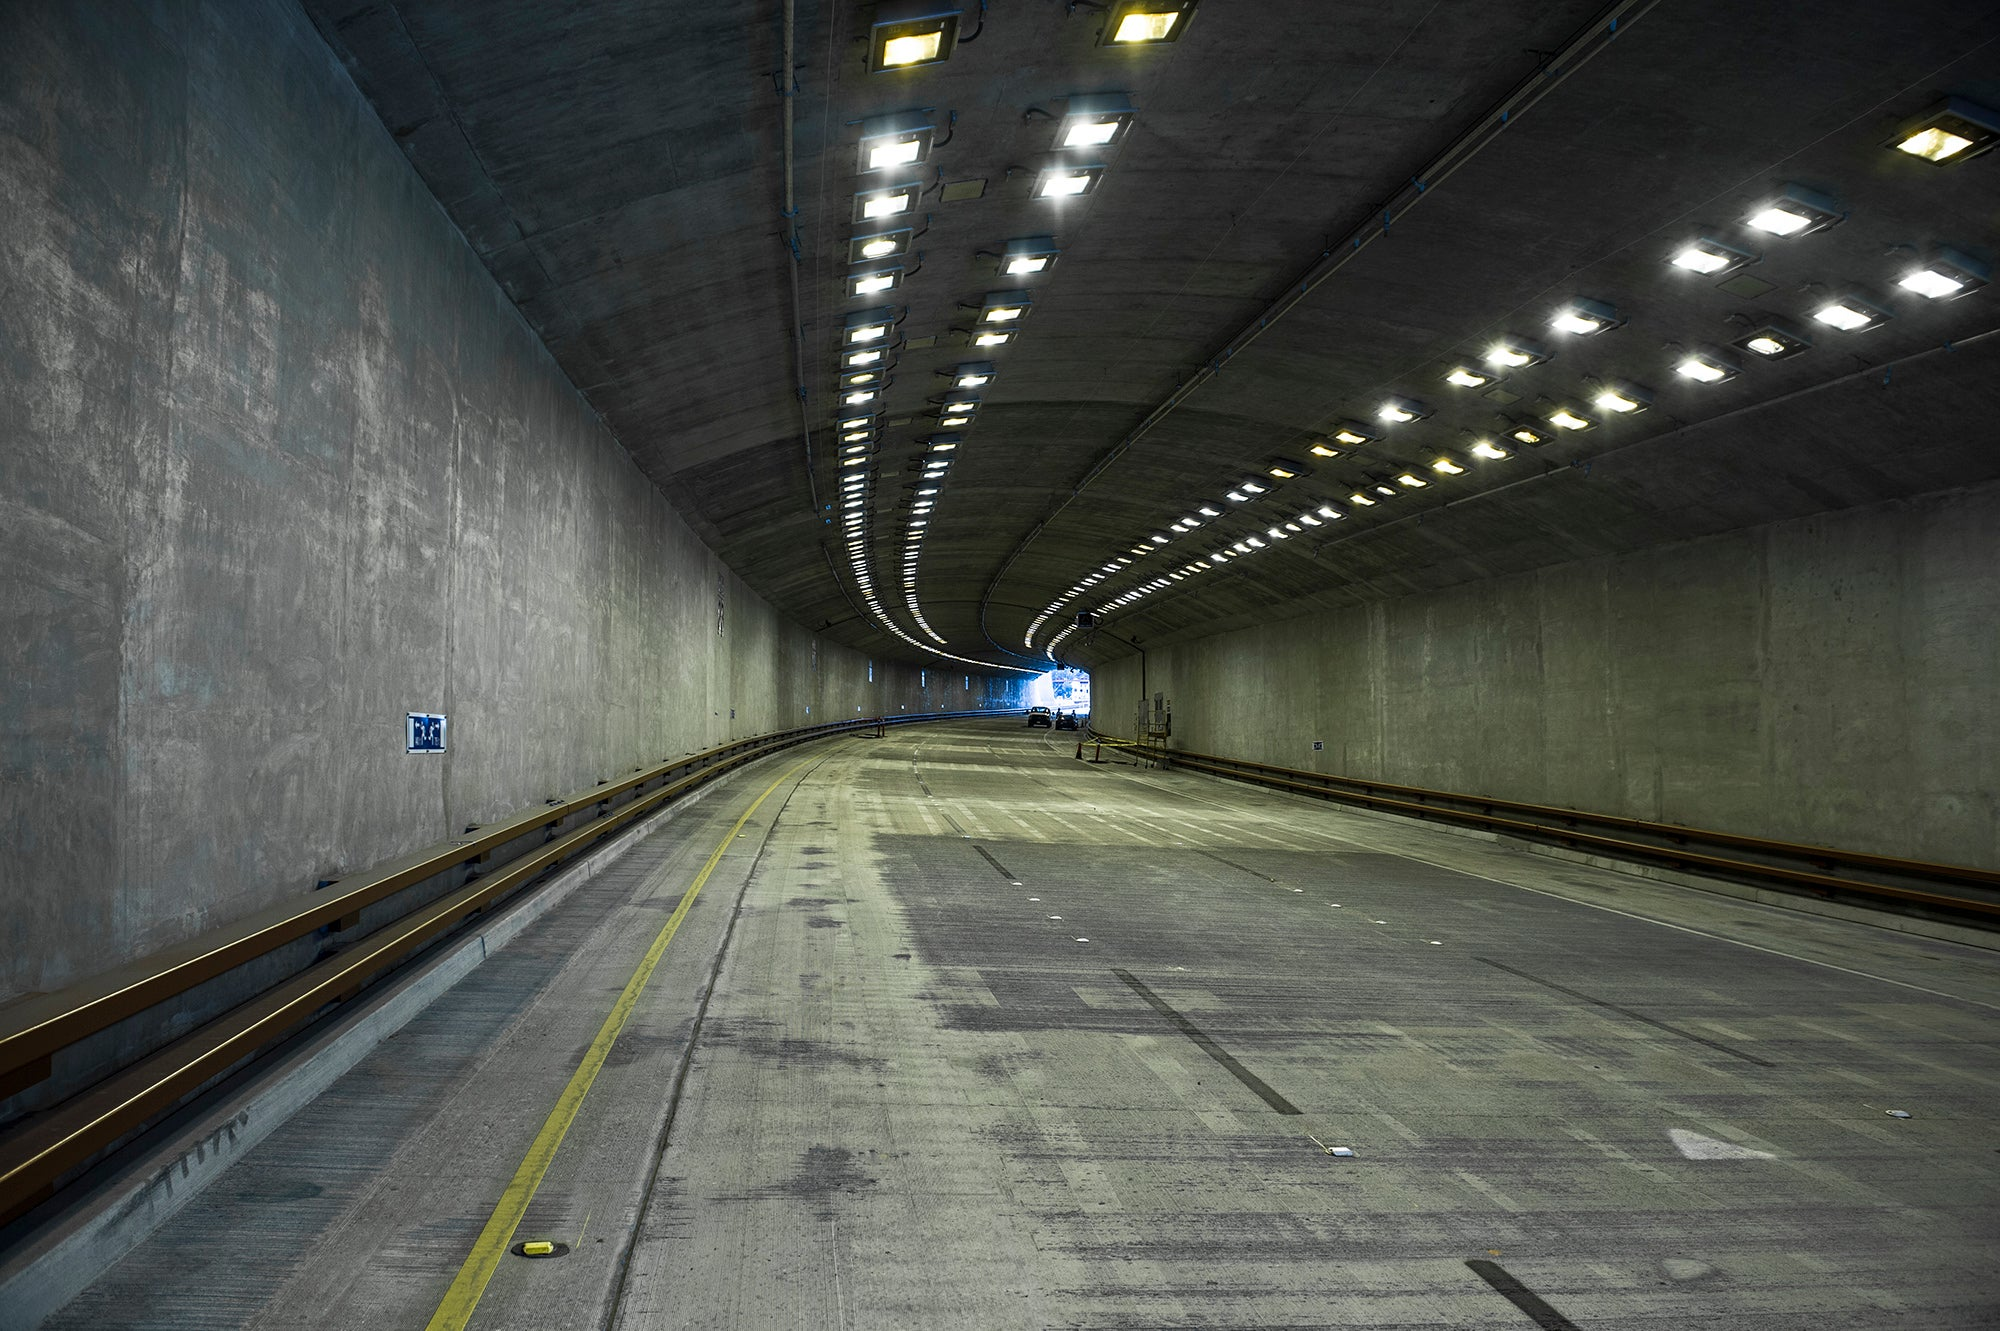 This tunnel is quiet now, but come Monday morning, traffic will begin to flow through it.